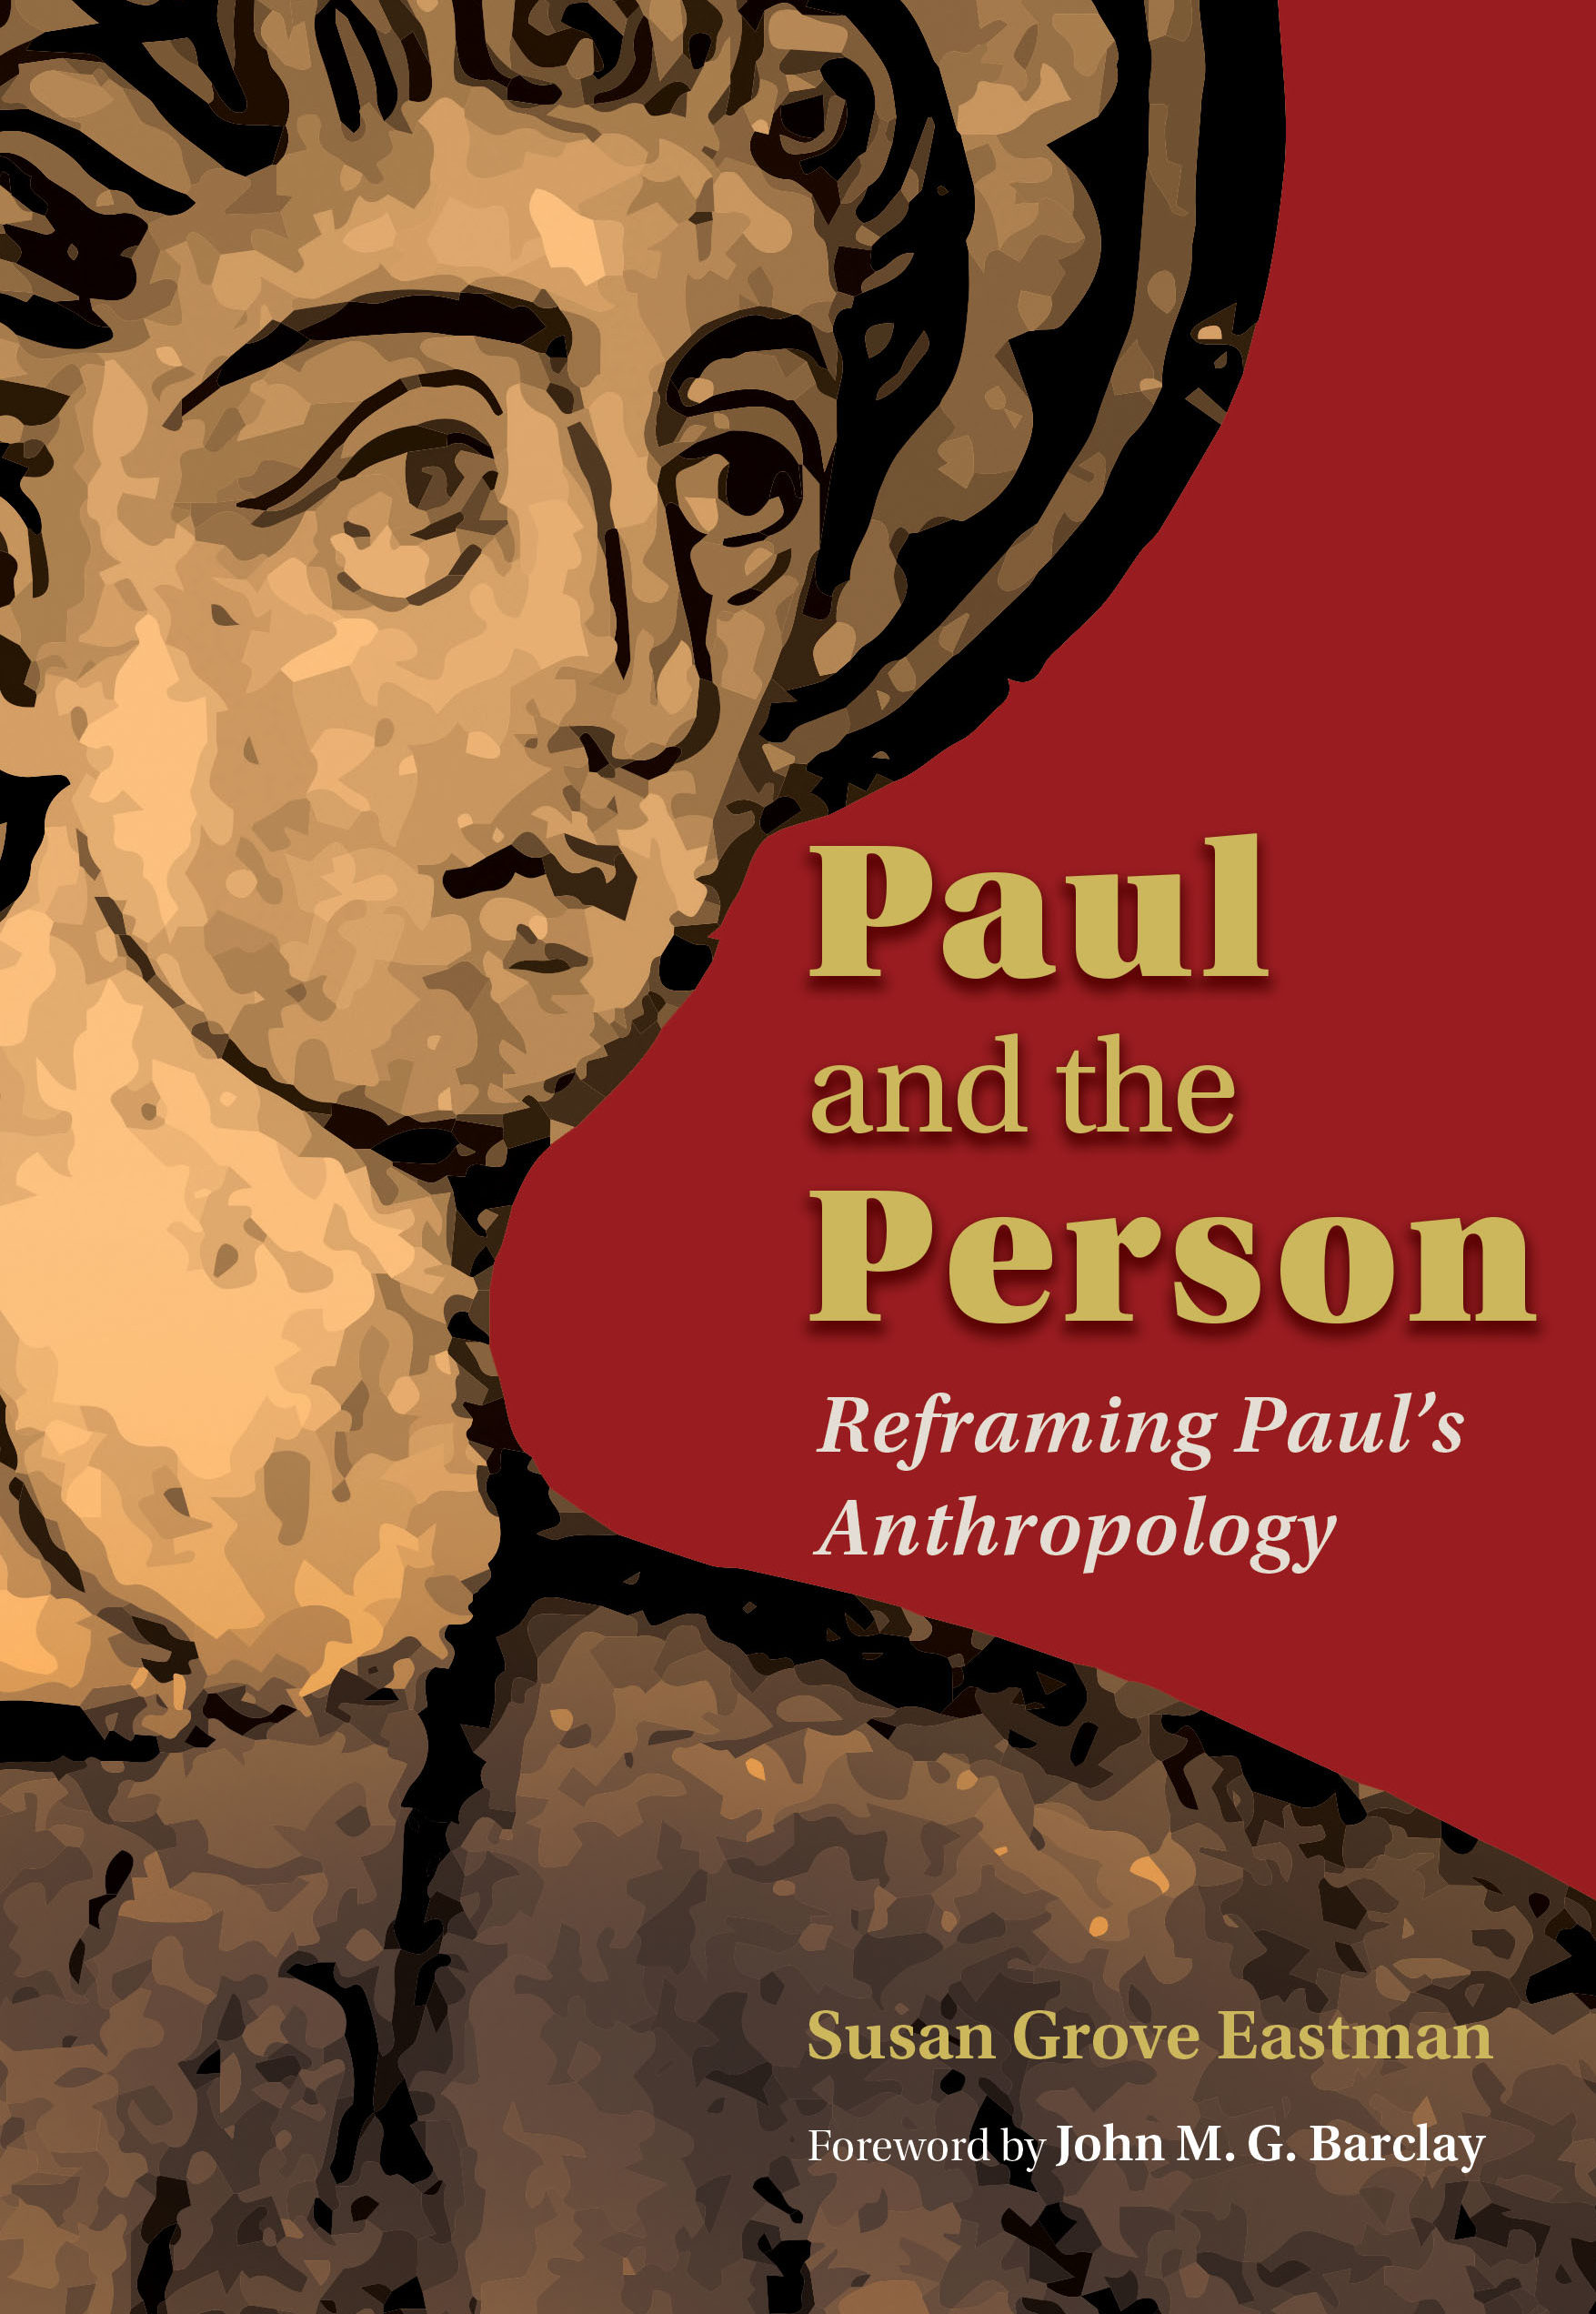 The Participatory Anthropology of 1 Corinthians: Reflections on Susan Eastman's Paul and the Person